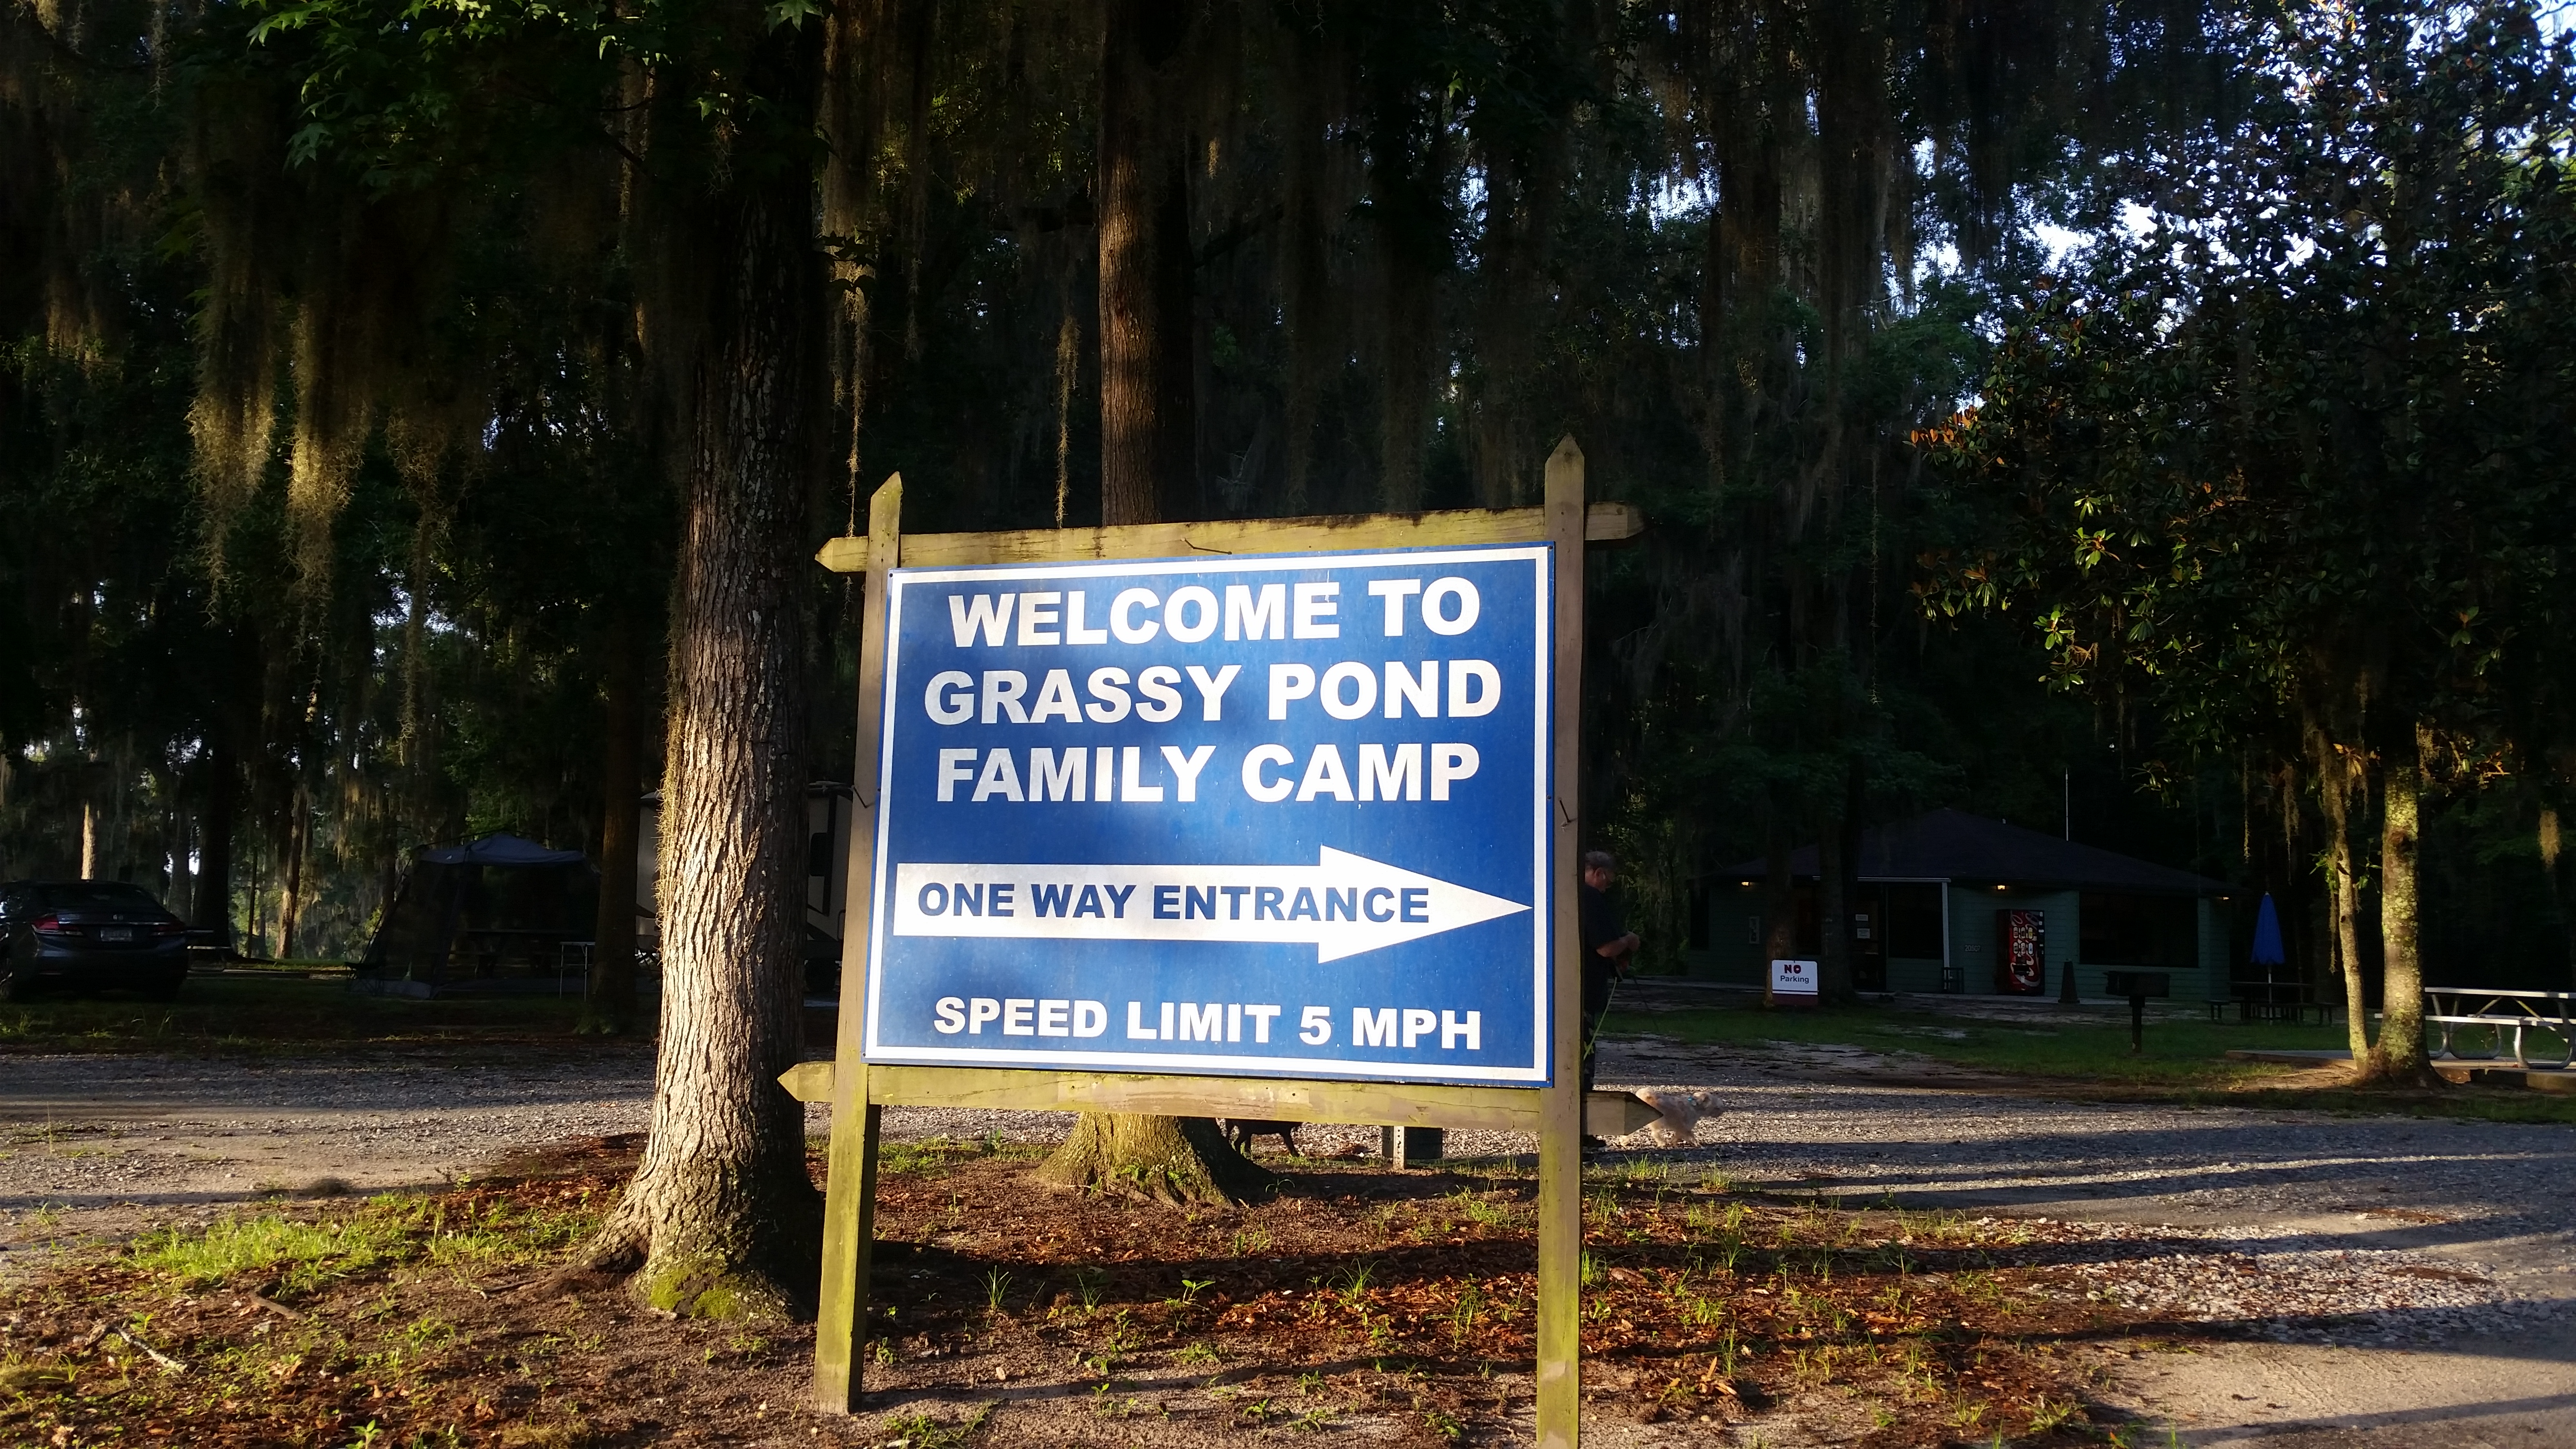 Grassy pond moody afb force support squadron for Georgia fishing license cost